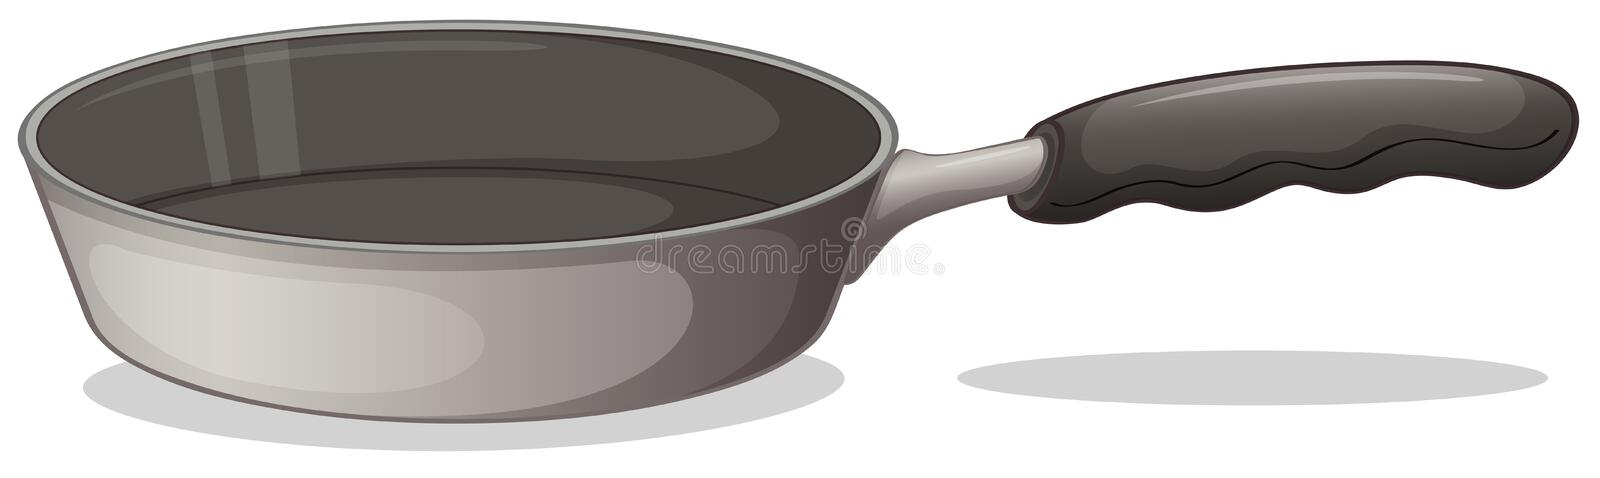 A gray cooking pan vector illustration